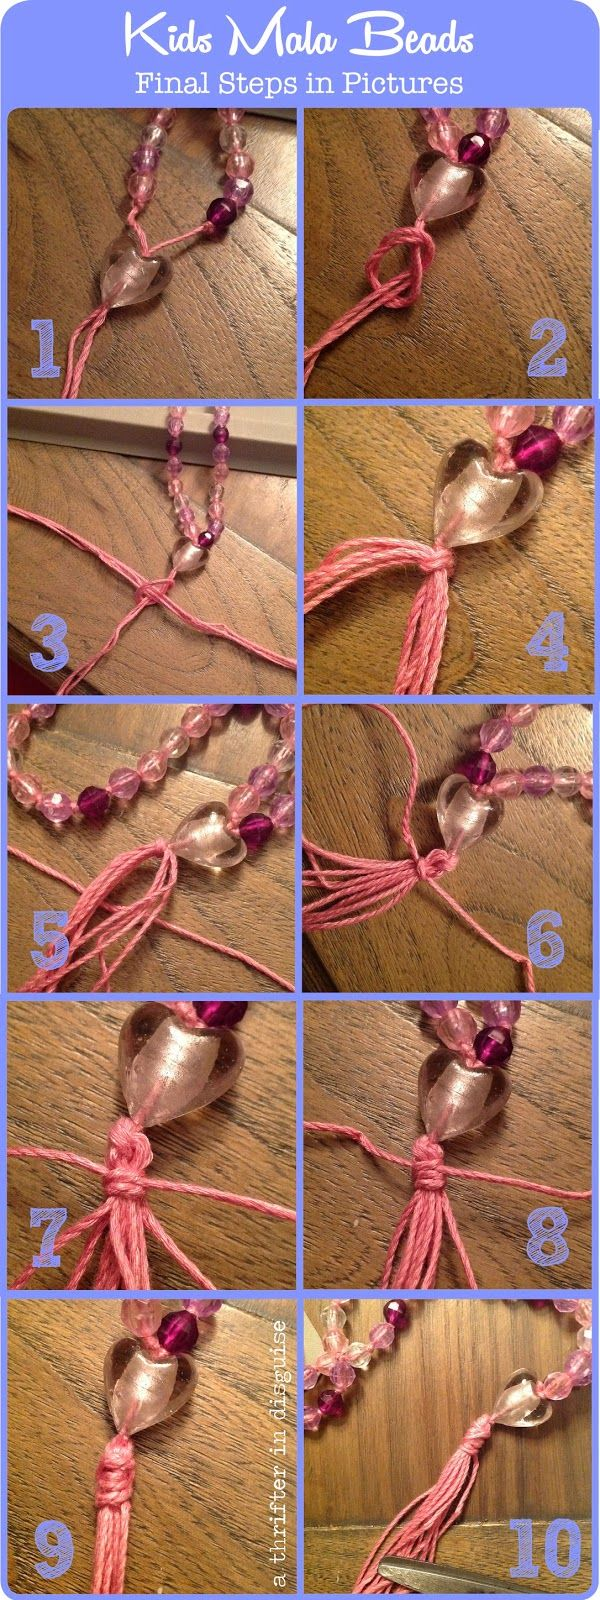 Directions for creating DIY Mala Beads